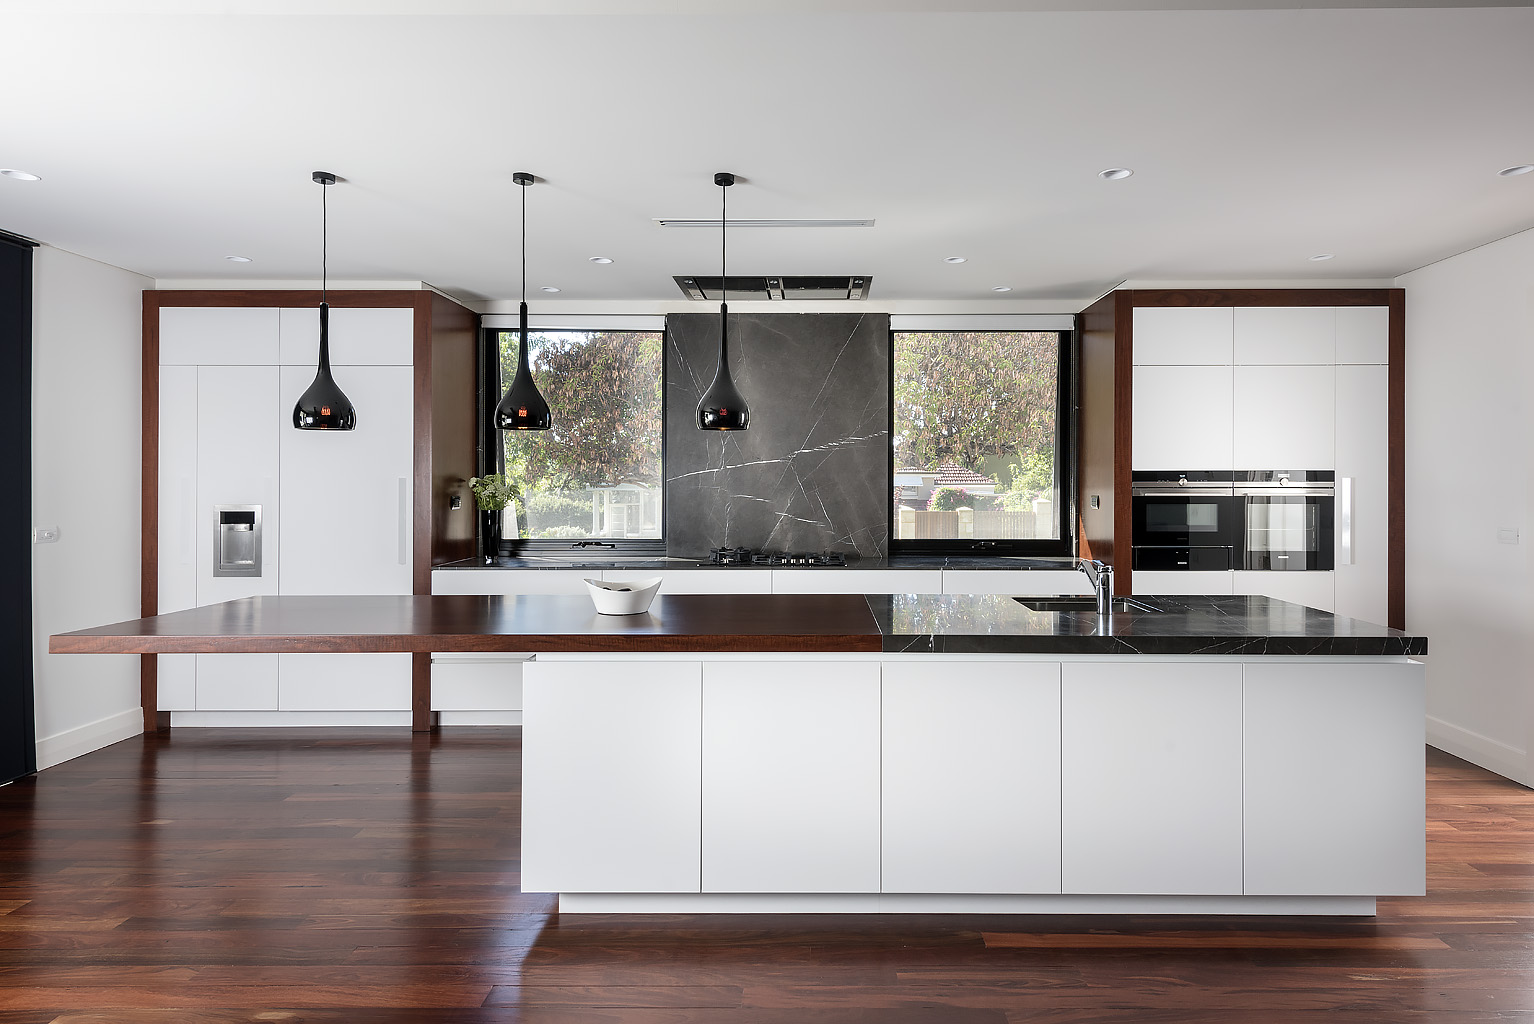 Kbdi 2016 design awards national winners the kitchen for Milano design award 2016